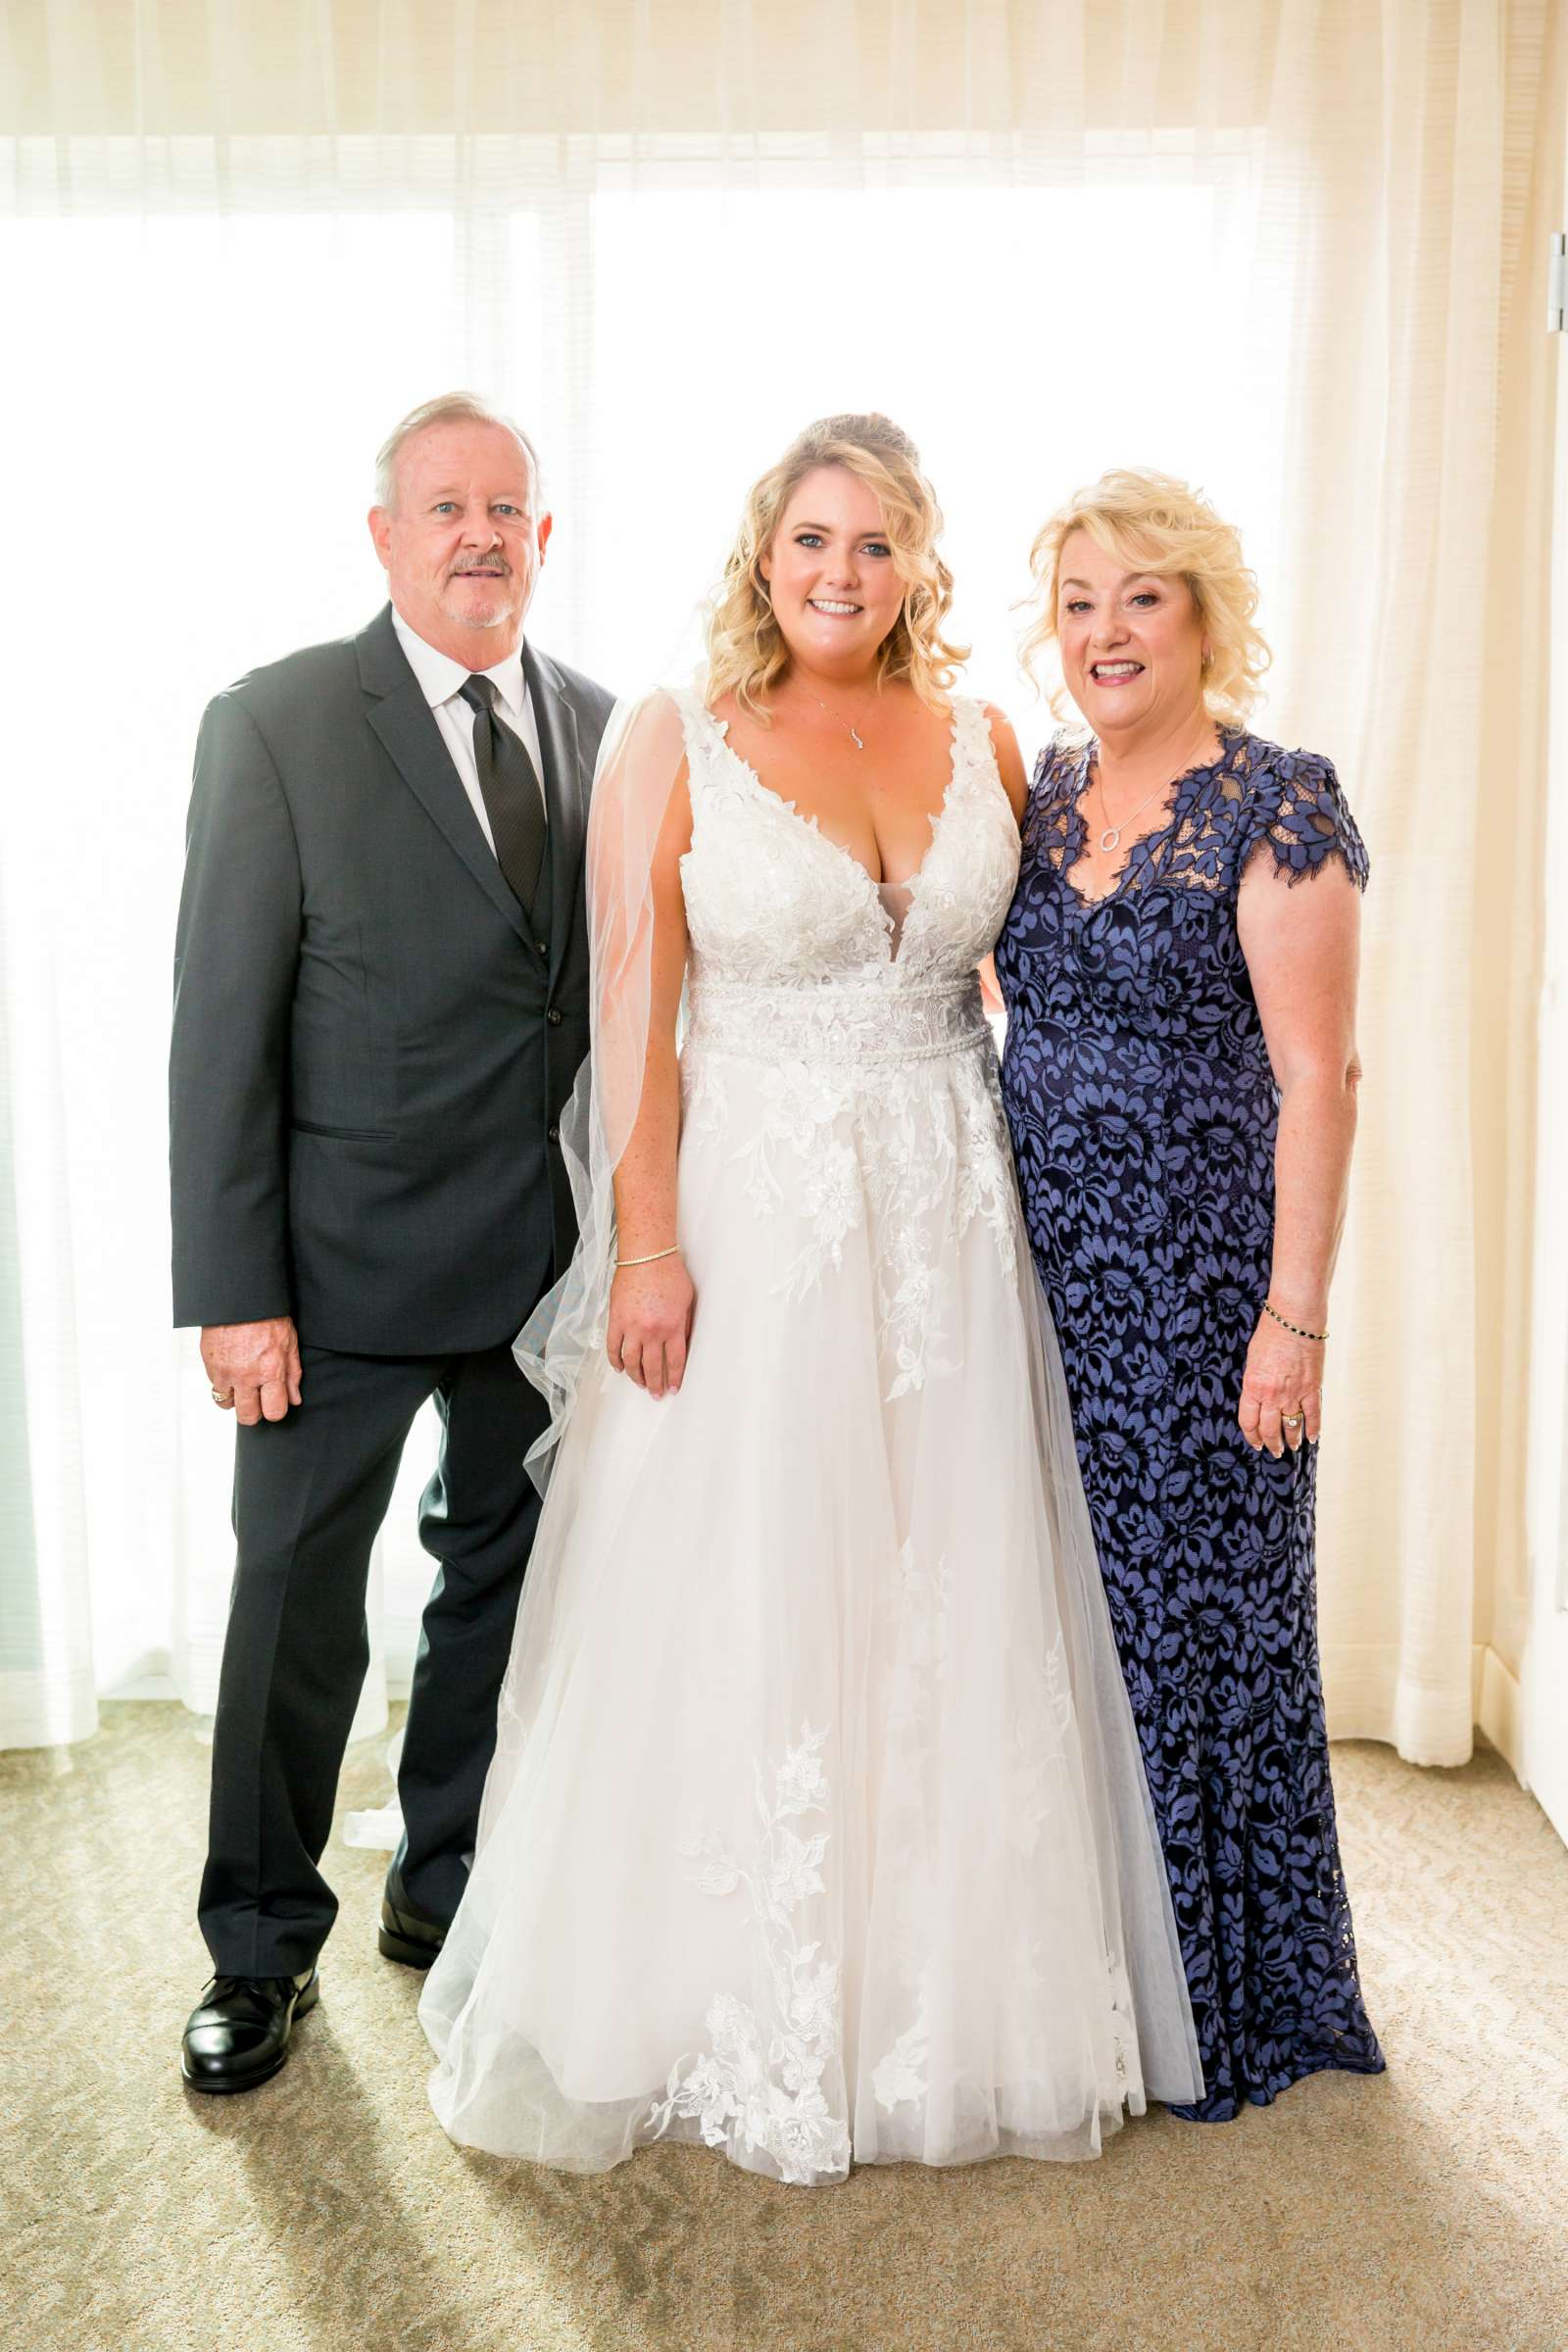 Cape Rey Carlsbad, A Hilton Resort Wedding, Michelle and Justin Wedding Photo #49 by True Photography